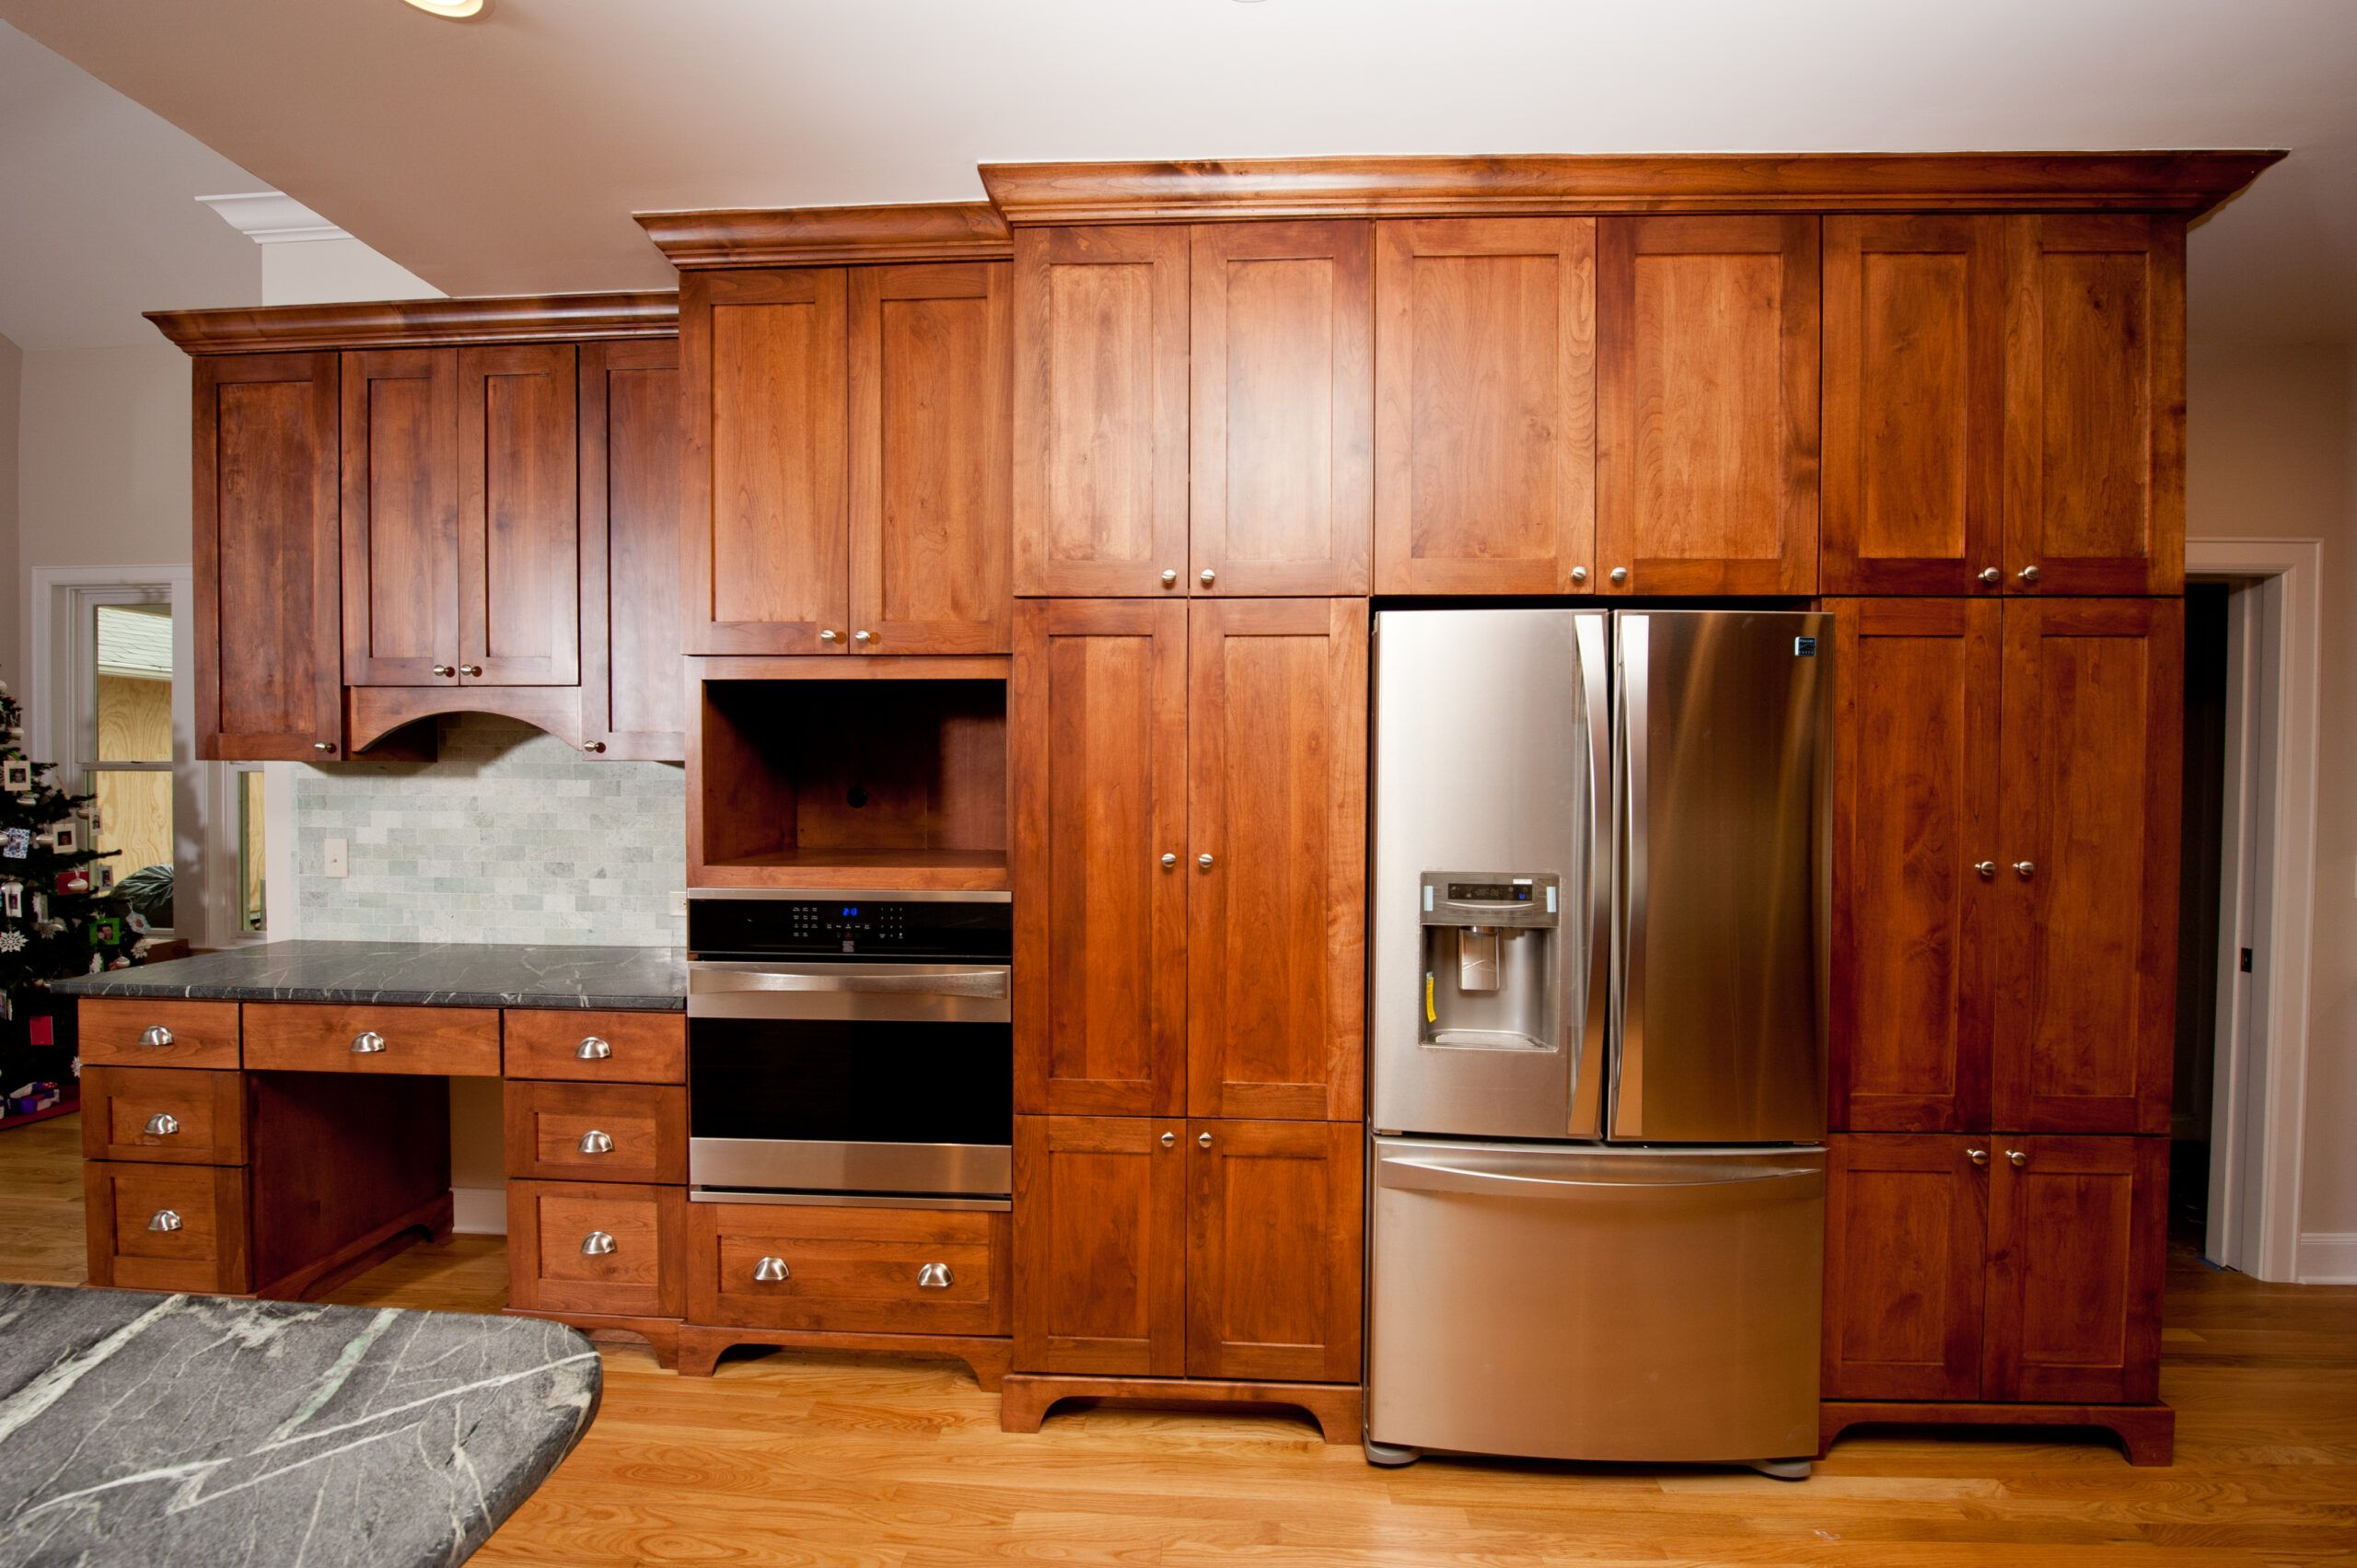 B Kitchen 1 In 2020 Contemporary Cabinets Installing Cabinets Custom Cabinets